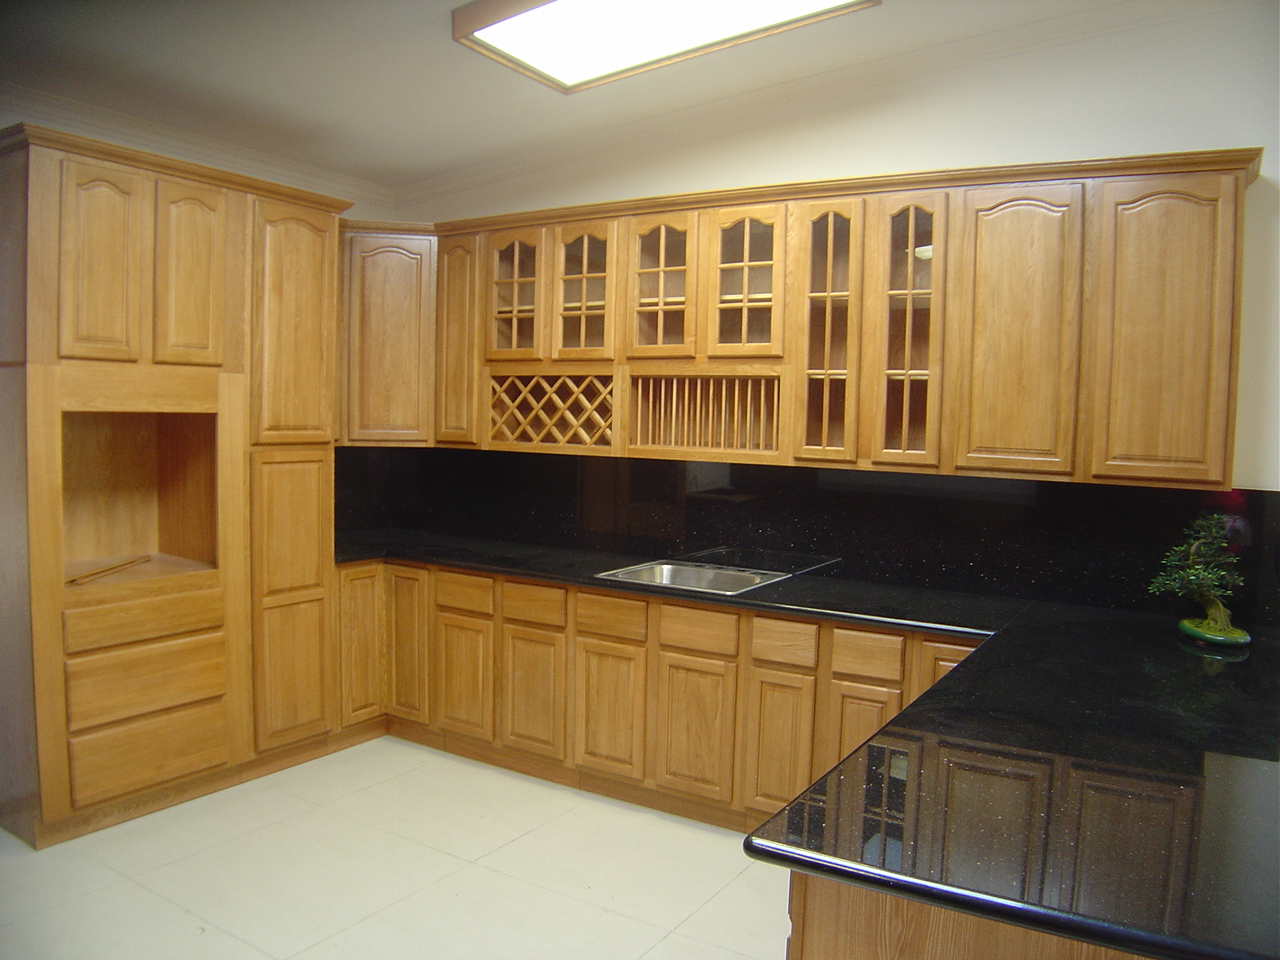 Oak kitchen cabinets for your interior kitchen minimalist for Kitchen design pictures